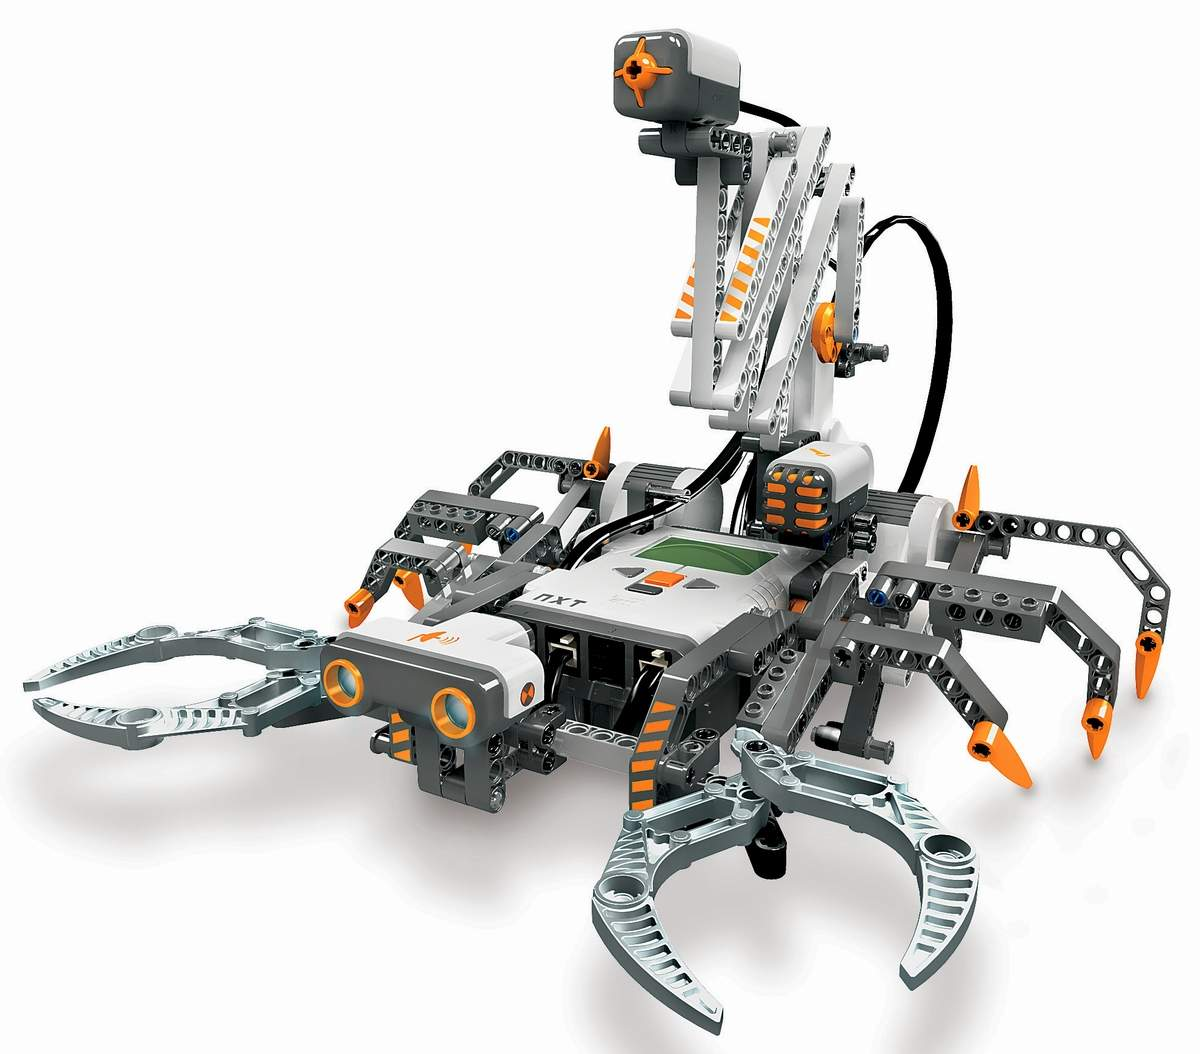 Lego mindstorms nxt small robots the old robot 39 s web site - Piezas lego gigantes ...